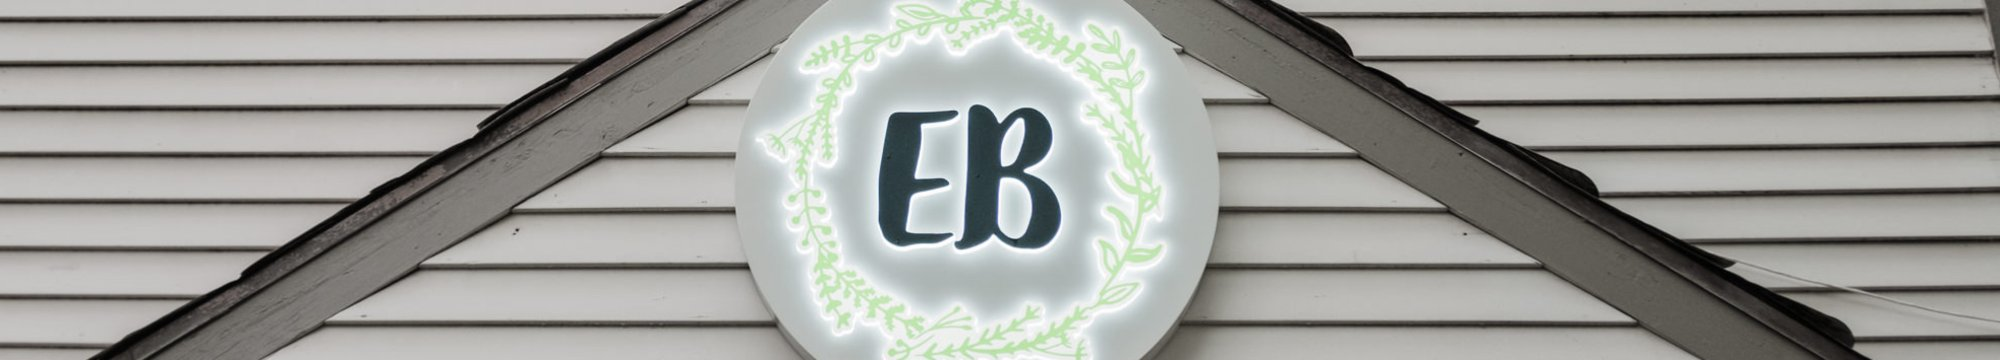 EB Store Front